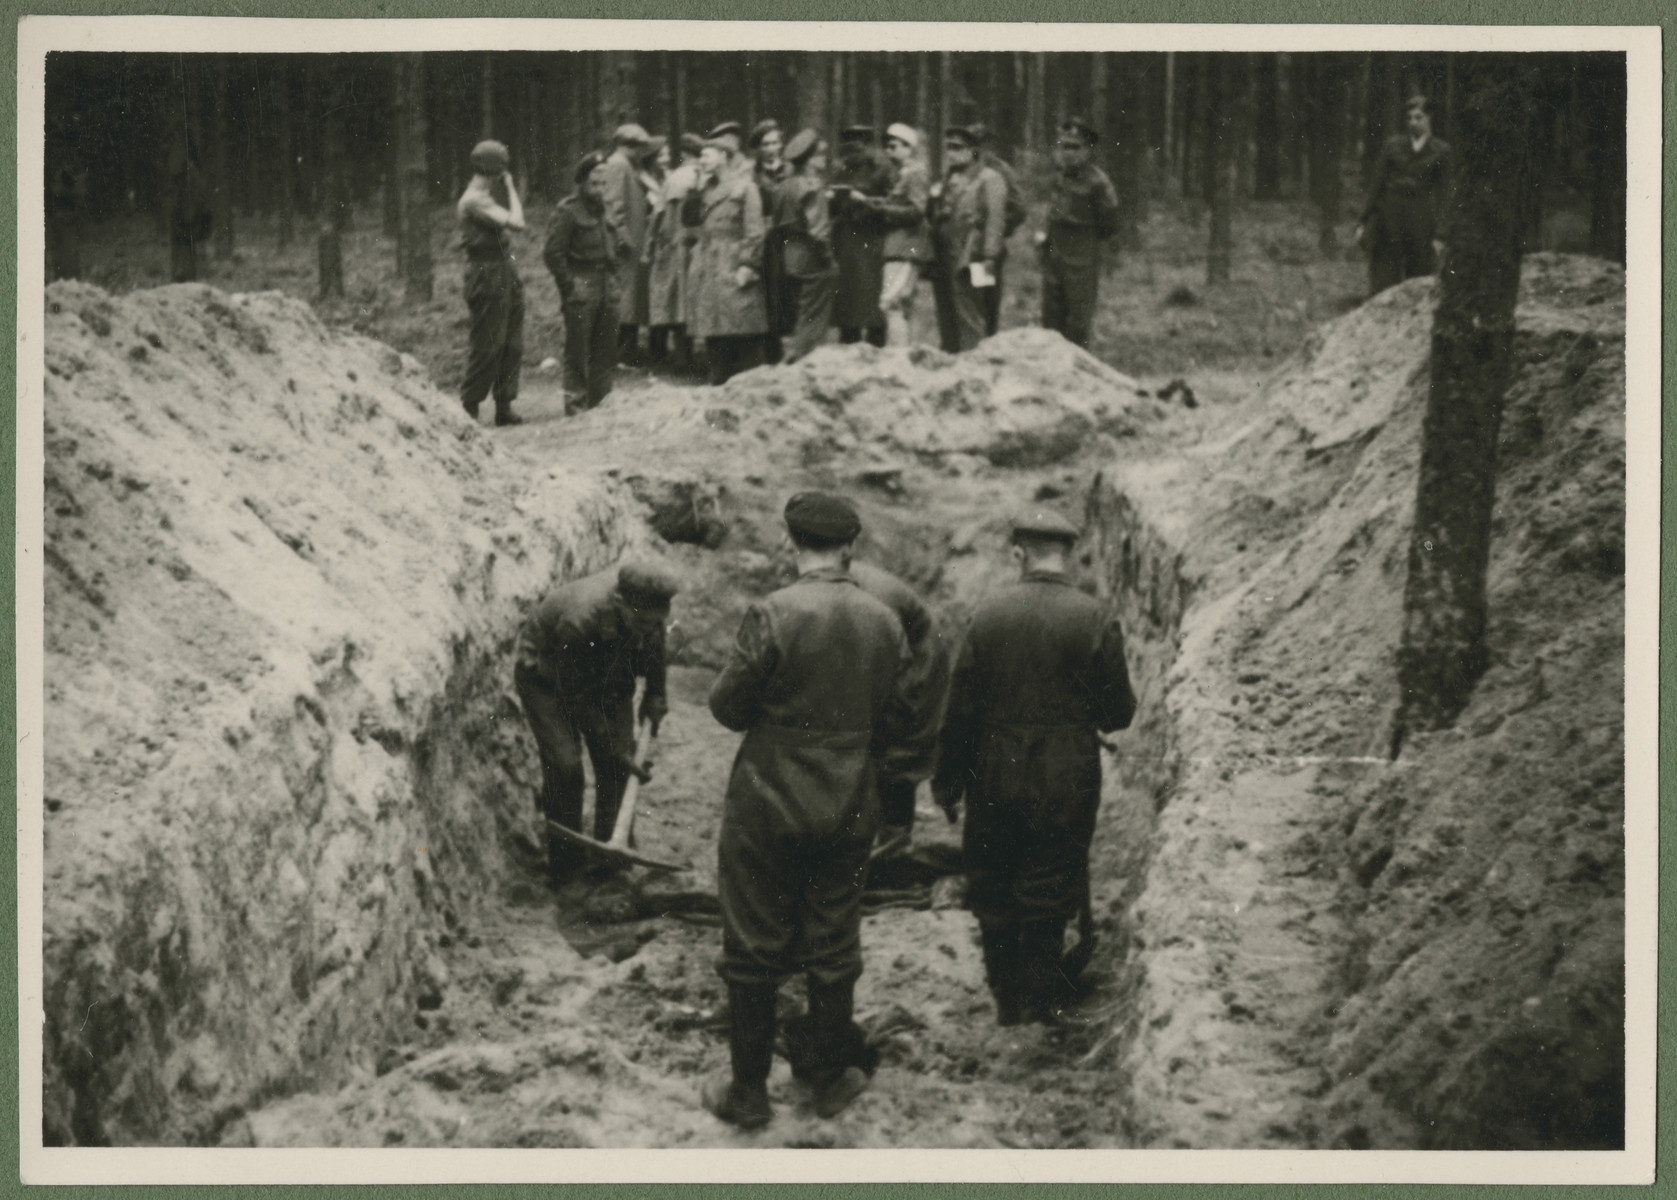 Under the supervision of British troops, German civilians and Nazi officials exhume the corpses of 243 slave laborers for proper reburial.  The victims were shot by their guards on the railway lines at Lueneberg on the way to the Belsen Camp.